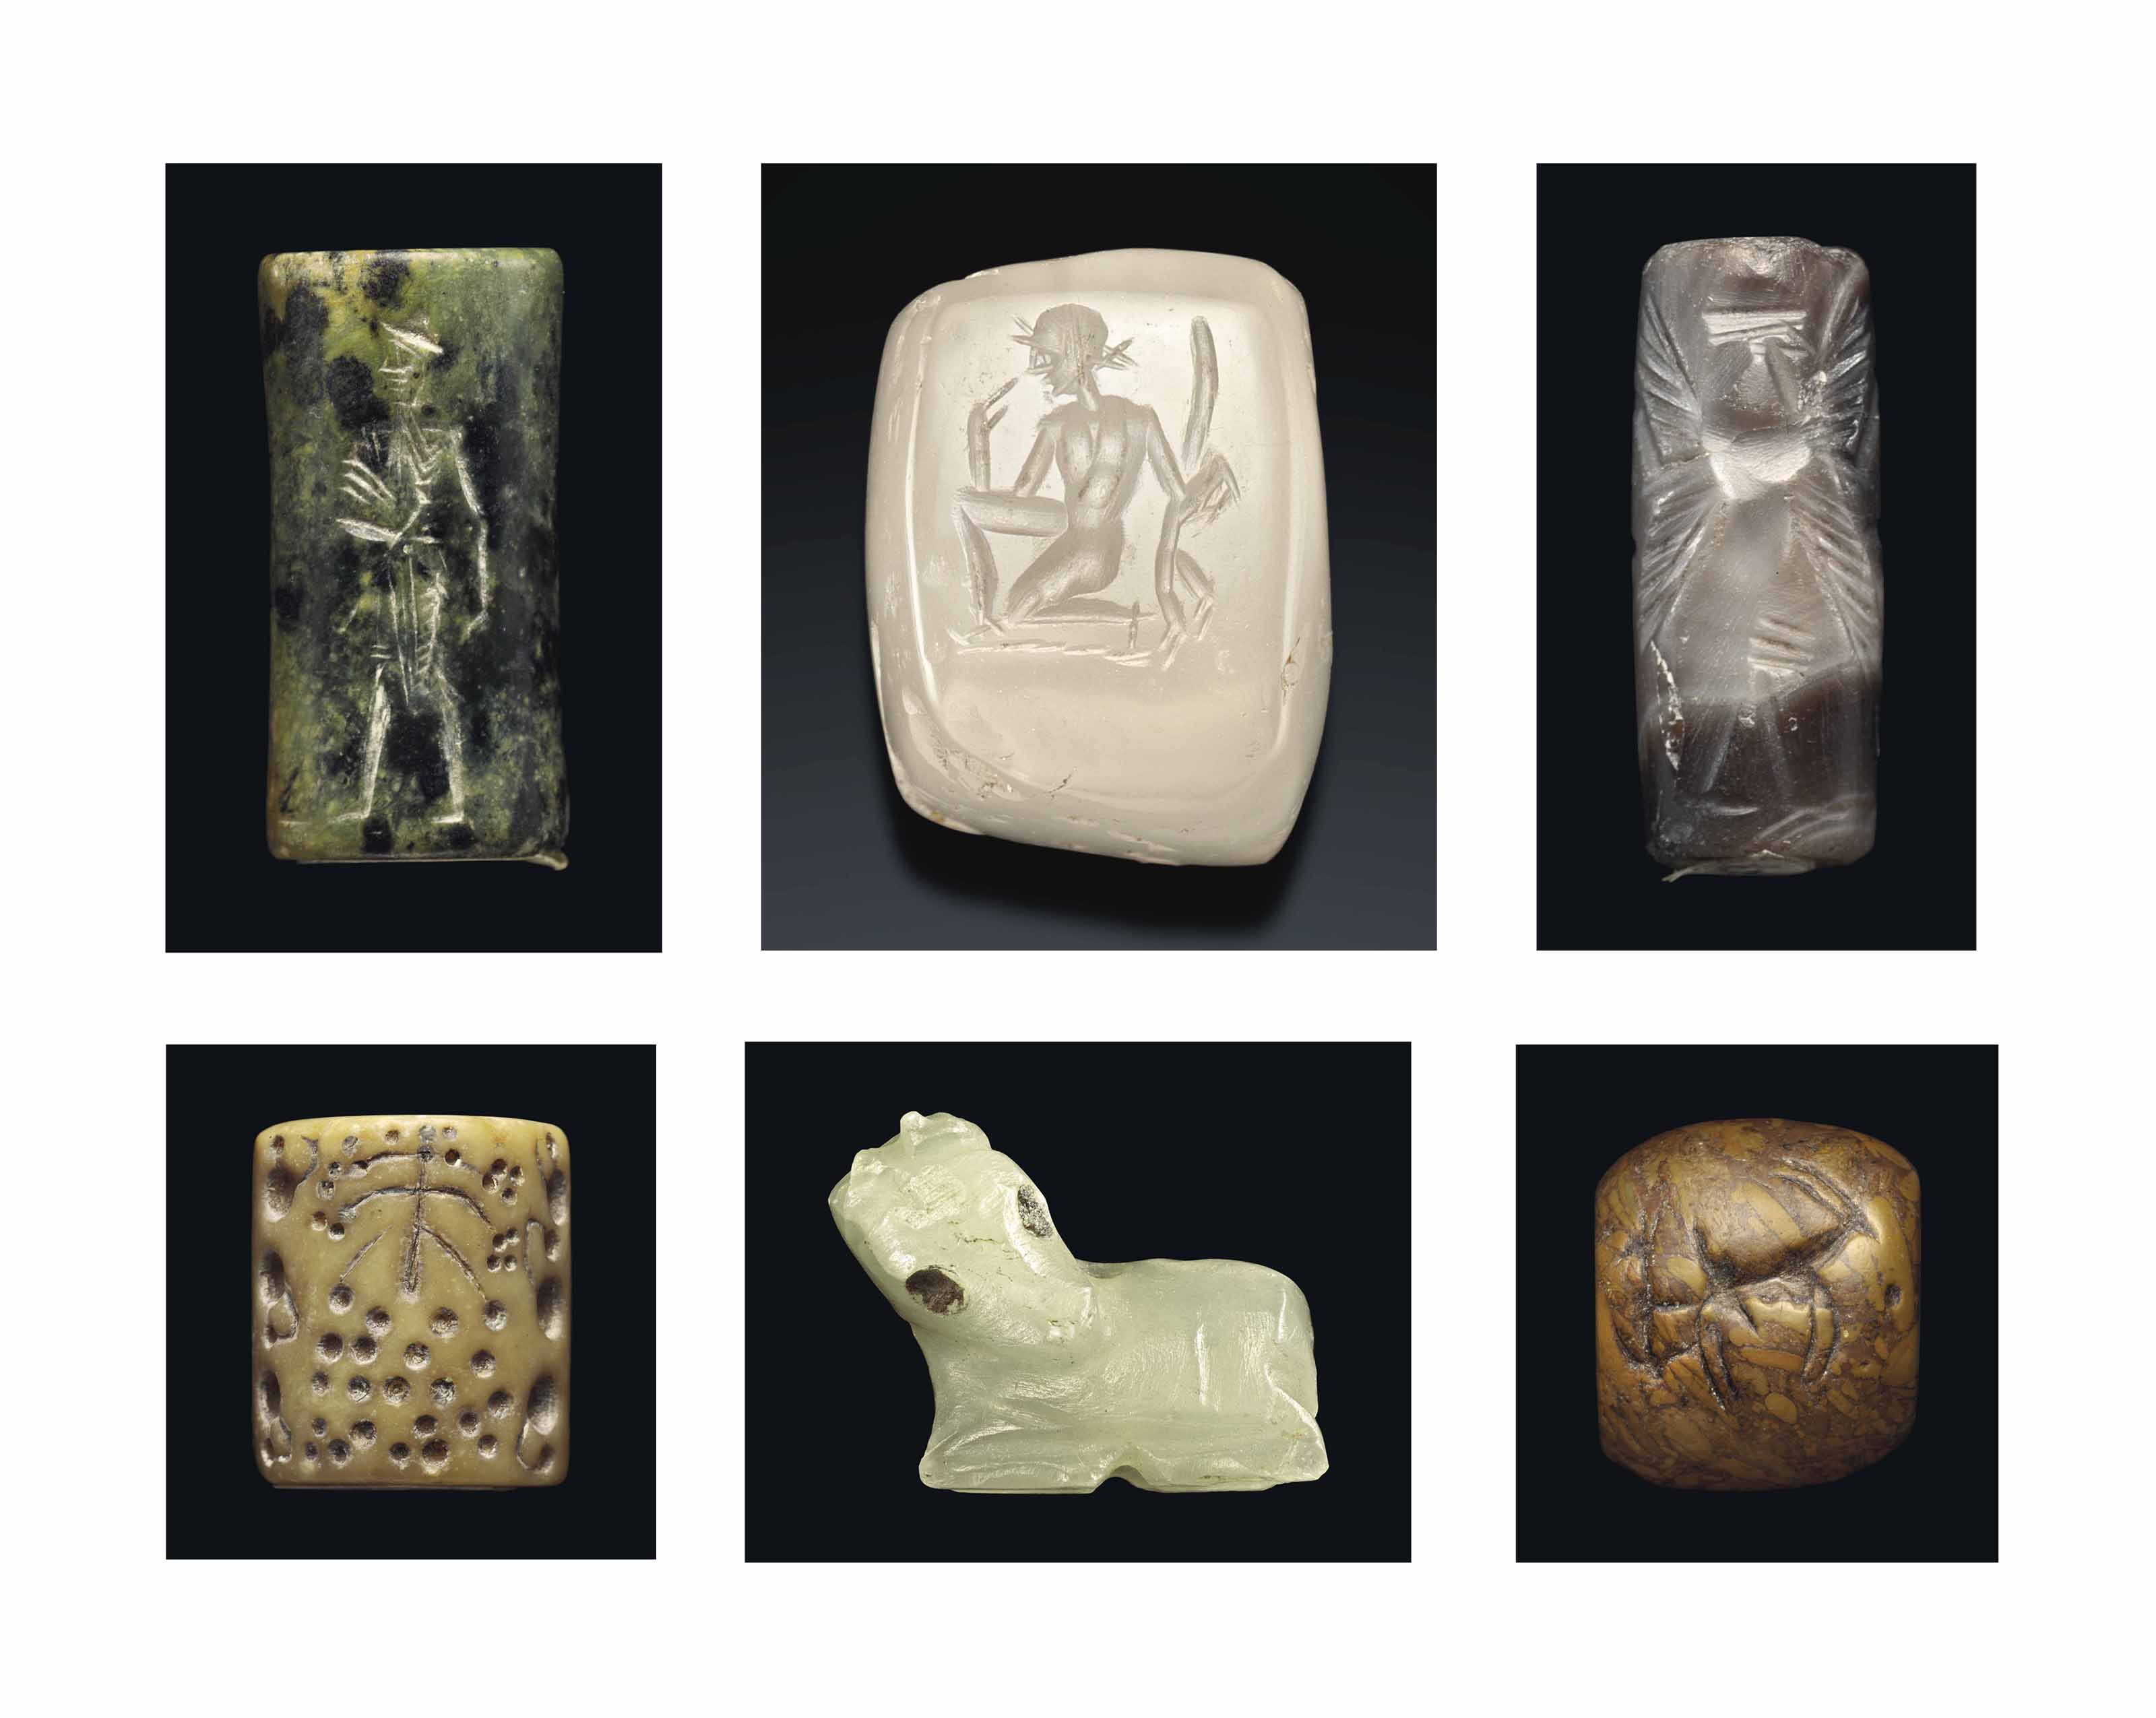 TWELVE ANCIENT STONE SEALS AND AMULETS | CIRCA 3RD-1ST MILLENNIUM